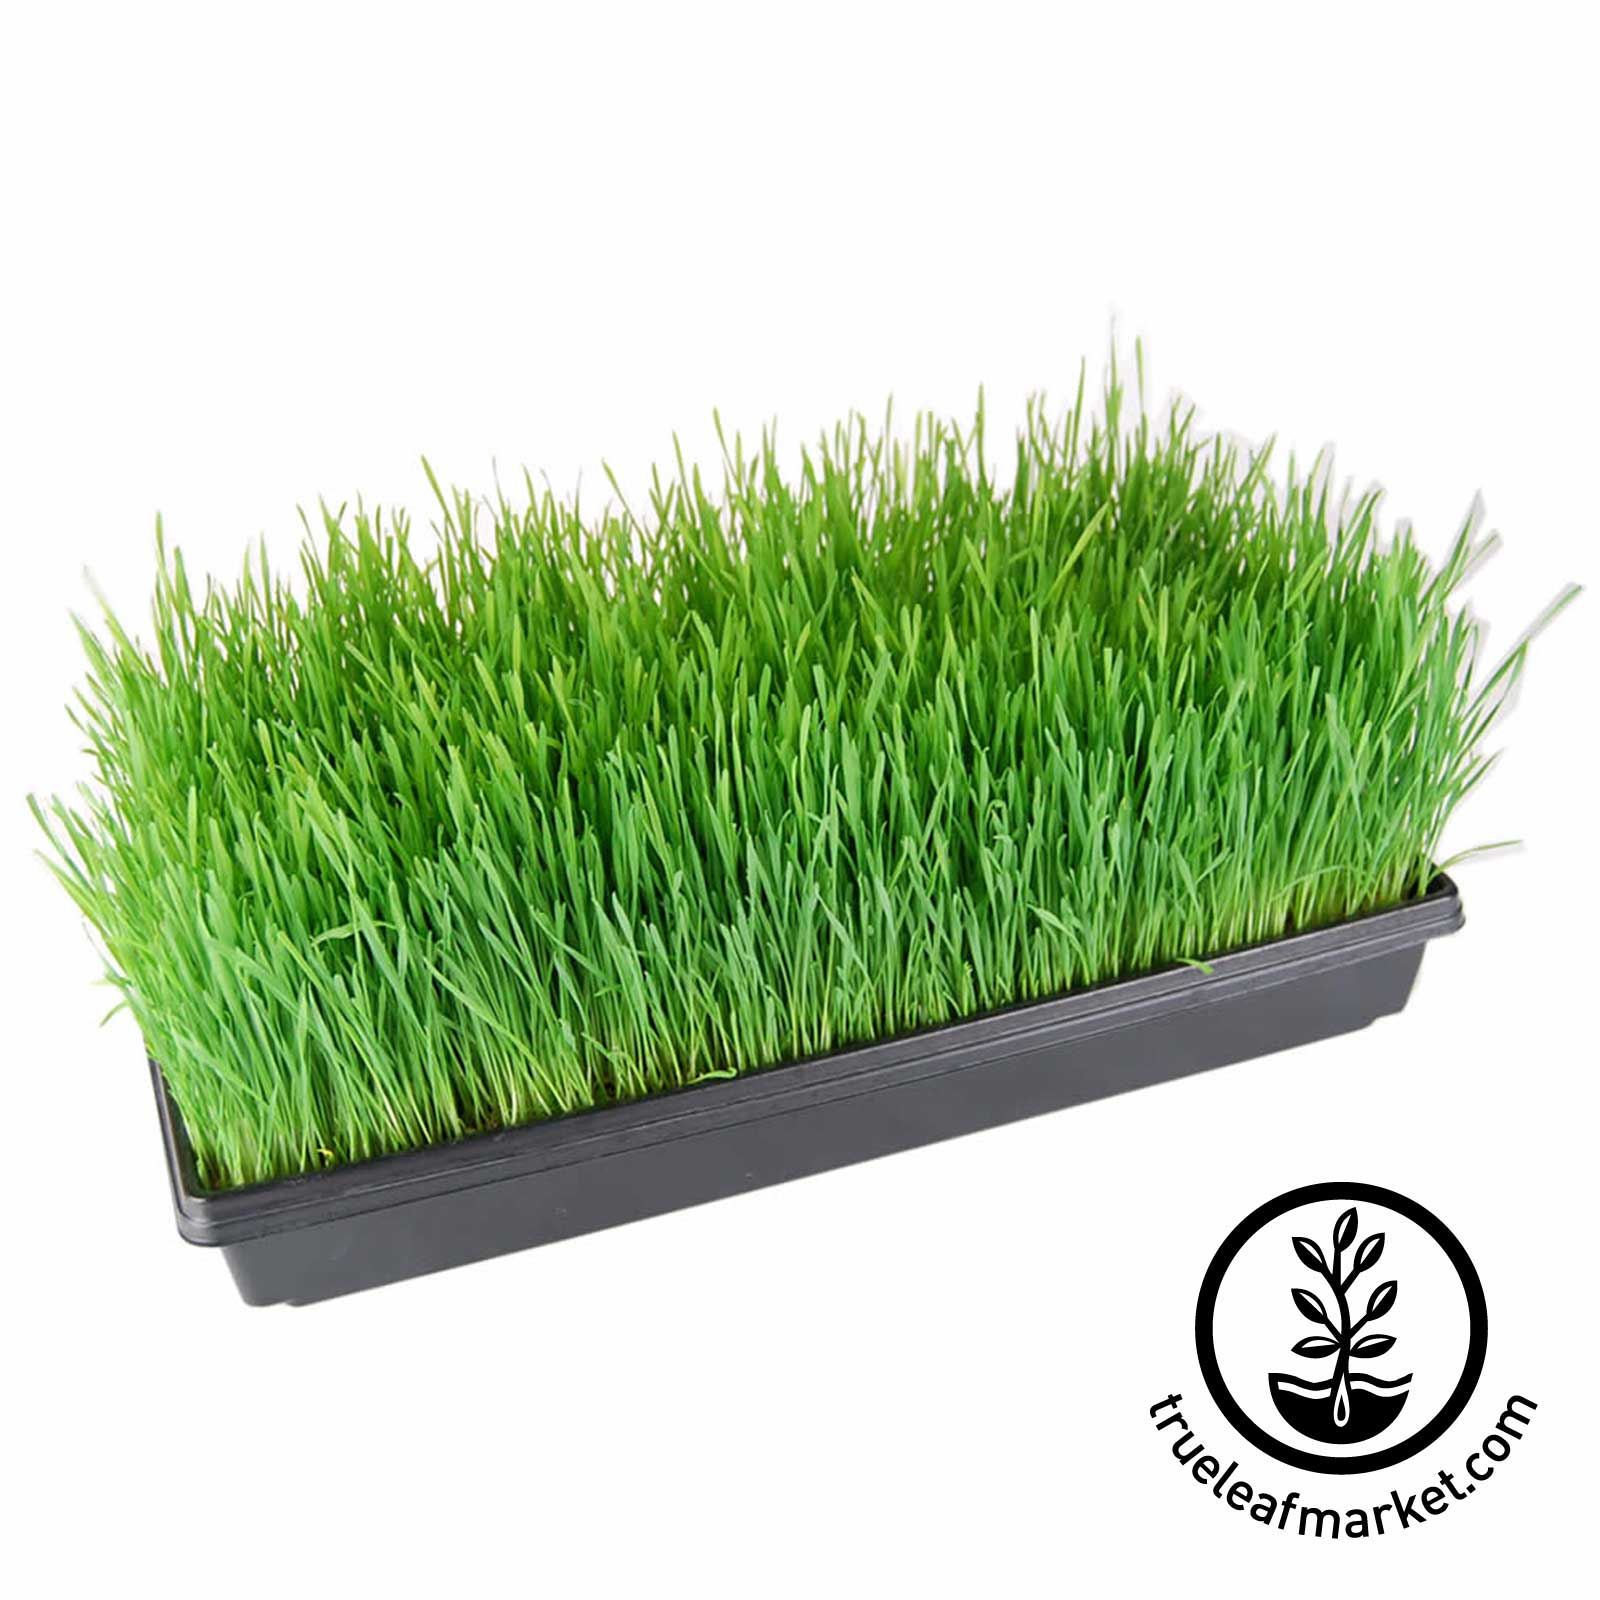 10 by 20 Tray of Wheatgrass